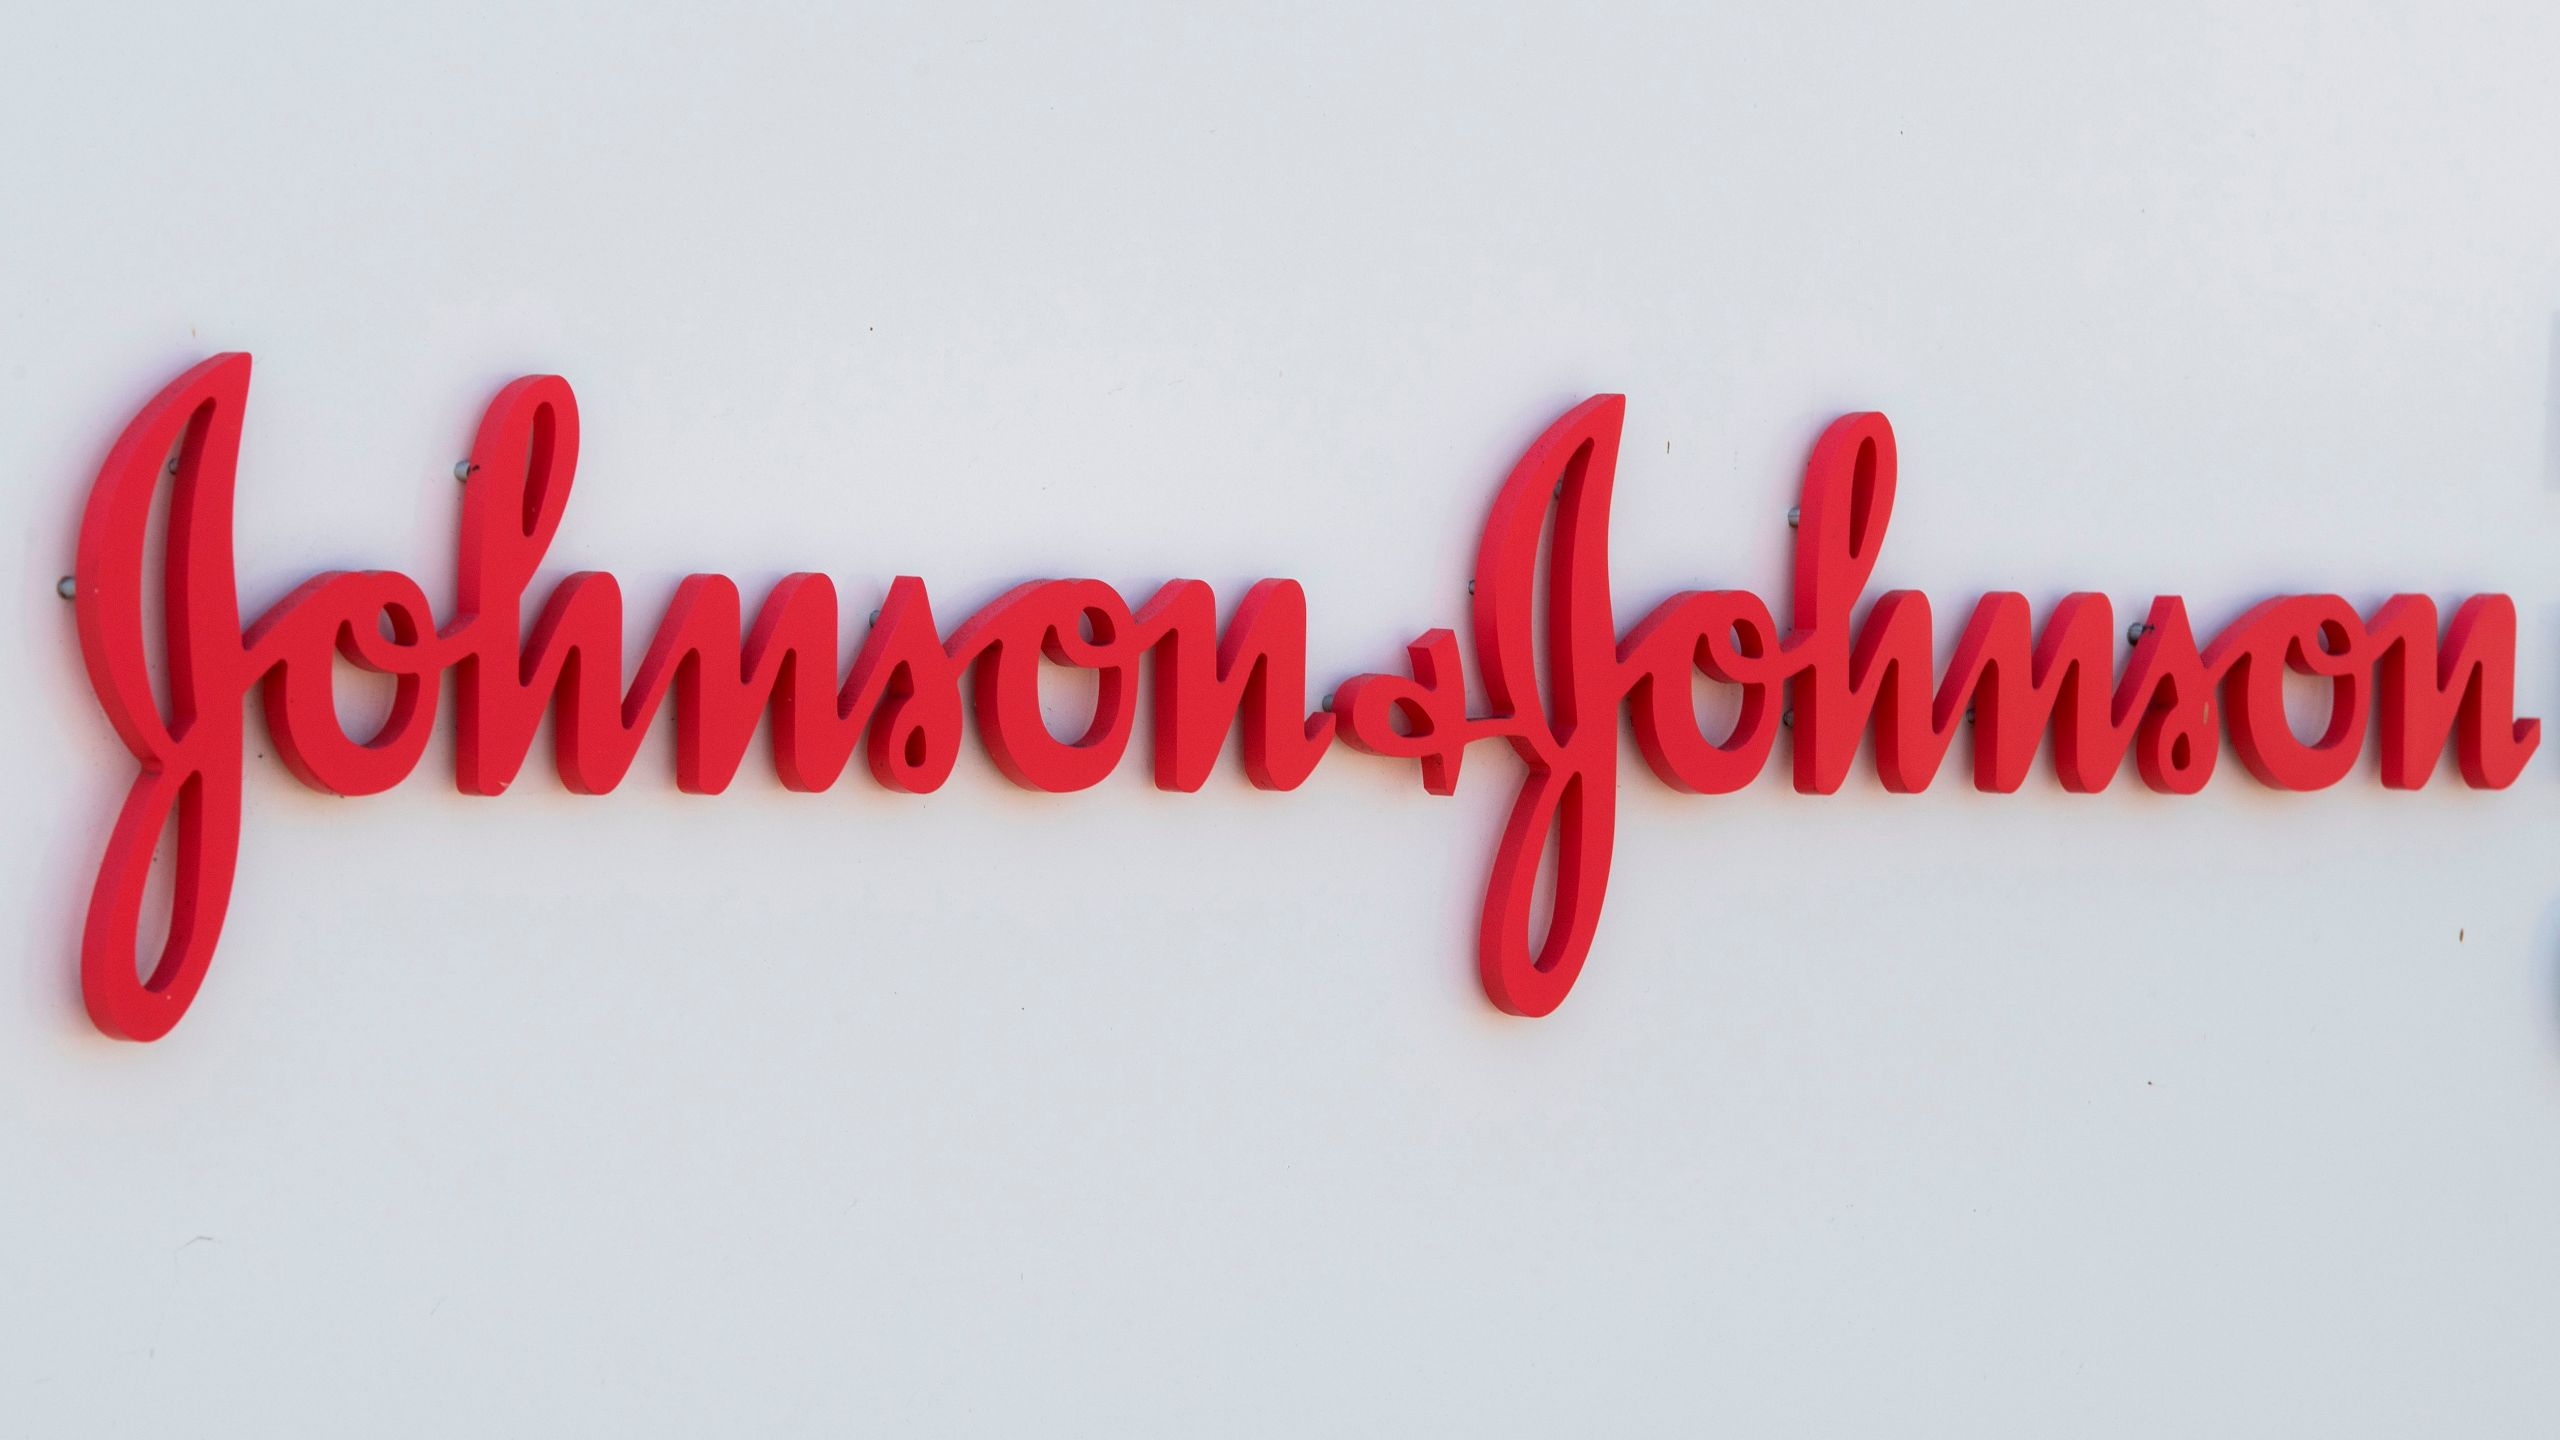 An entry sign to the Johnson & Johnson campus shows their logo in Irvine on Aug. 28, 2019. (Mark Ralston / AFP / Getty Images)